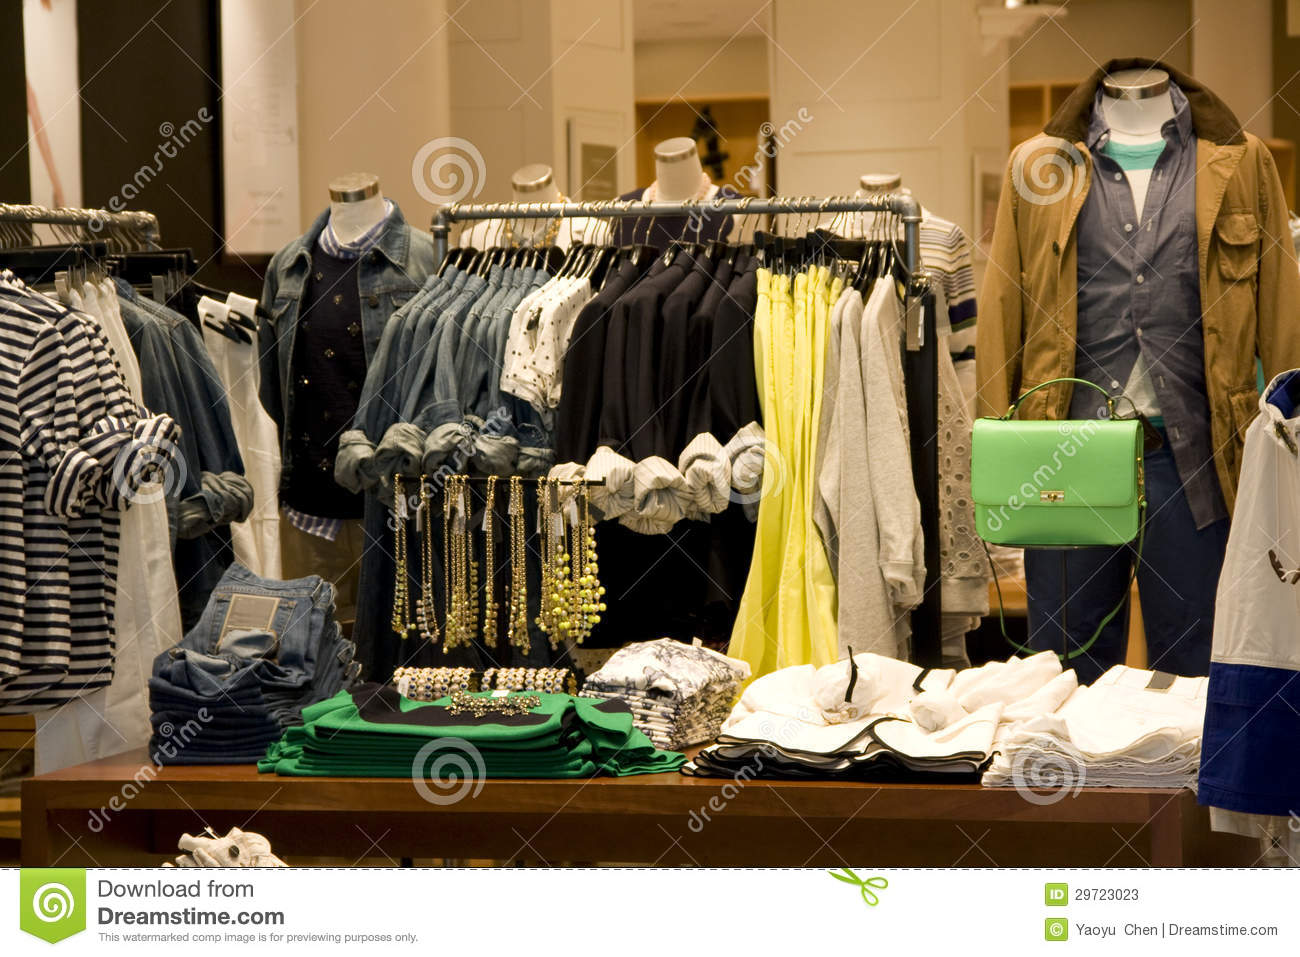 Women clothing stores Unique girl clothing stores